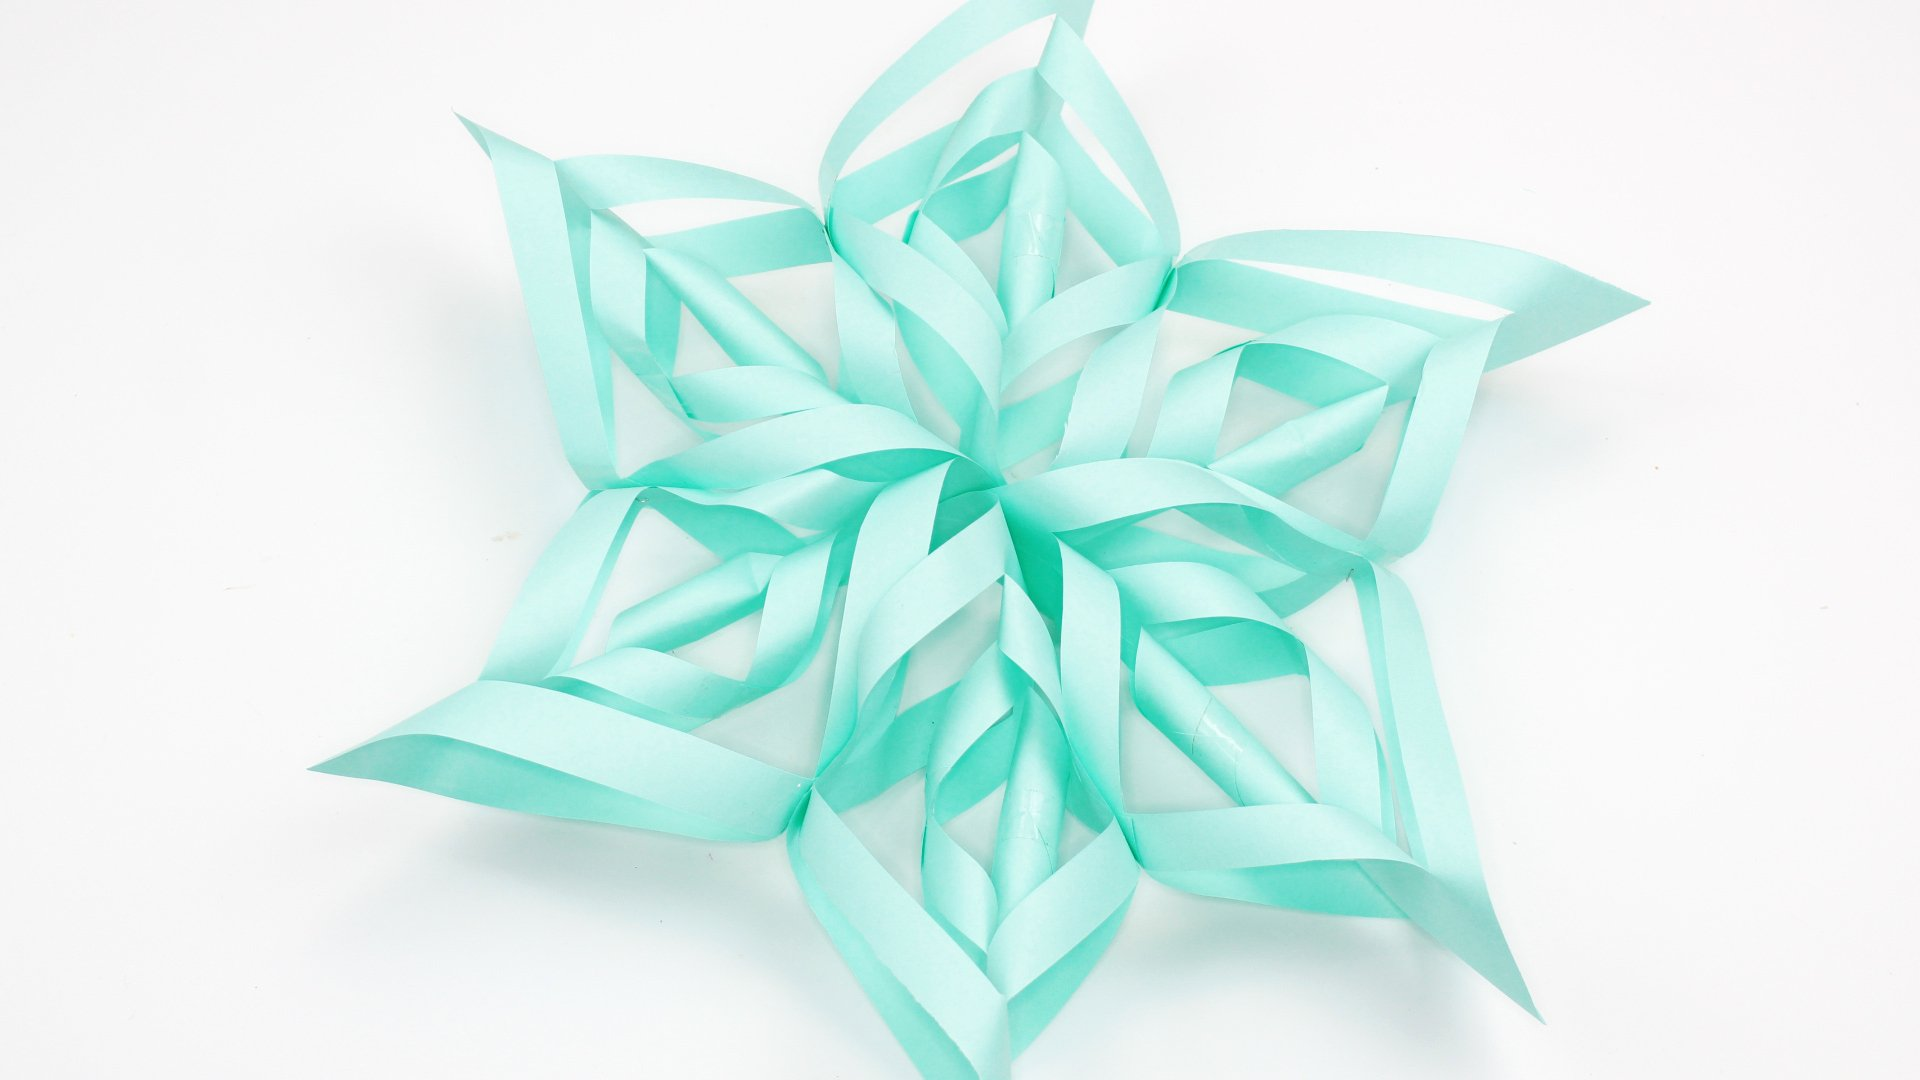 How to Make 3d Snowflakes Luxury How to Make A 3d Paper Snowflake 12 Steps with